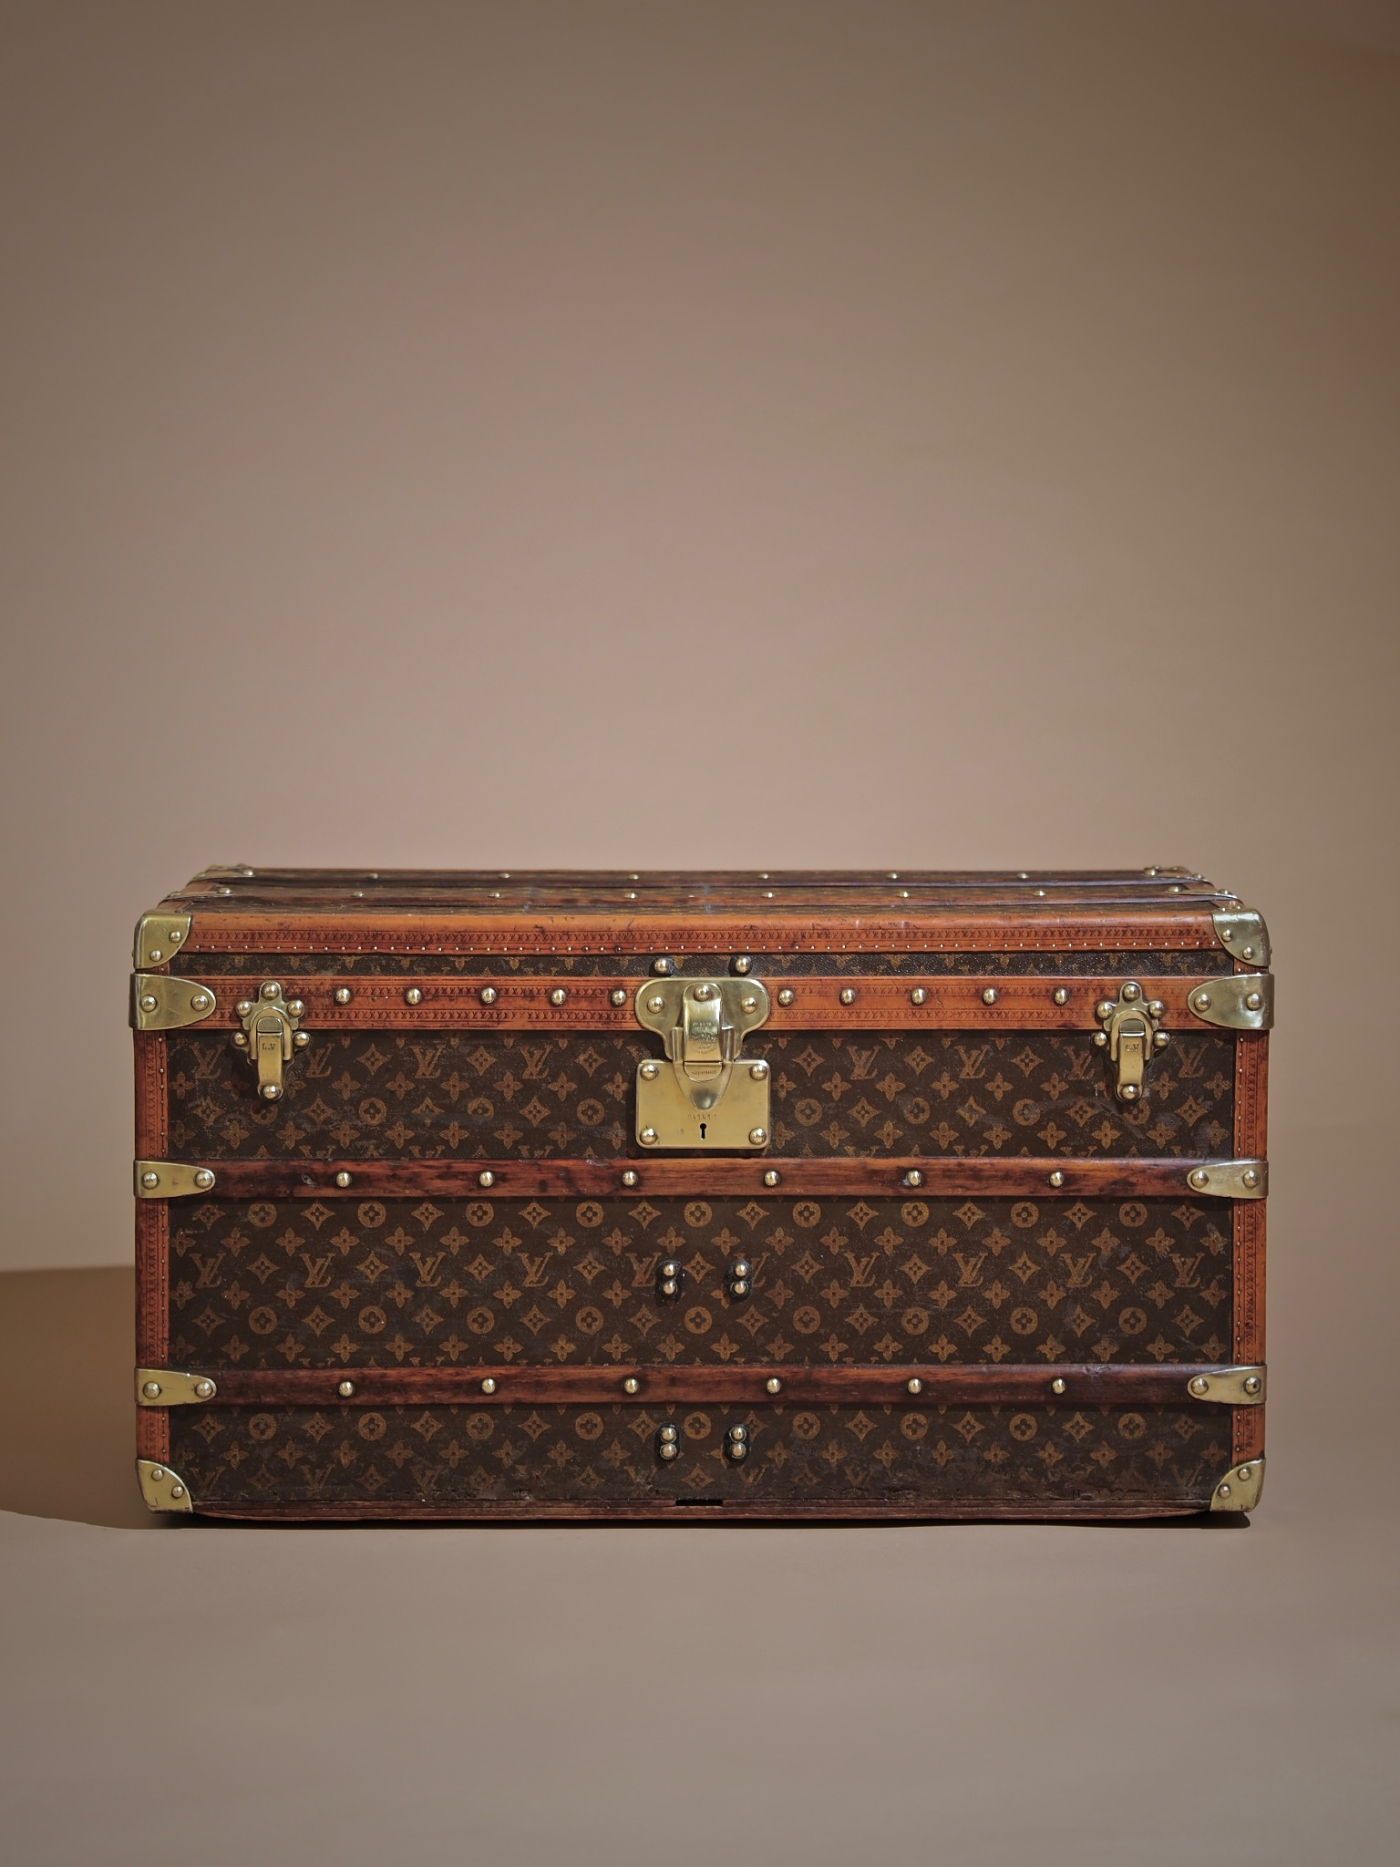 e-well-traveled-trunk-louis-vuitton-thumbnail-product-5719-1